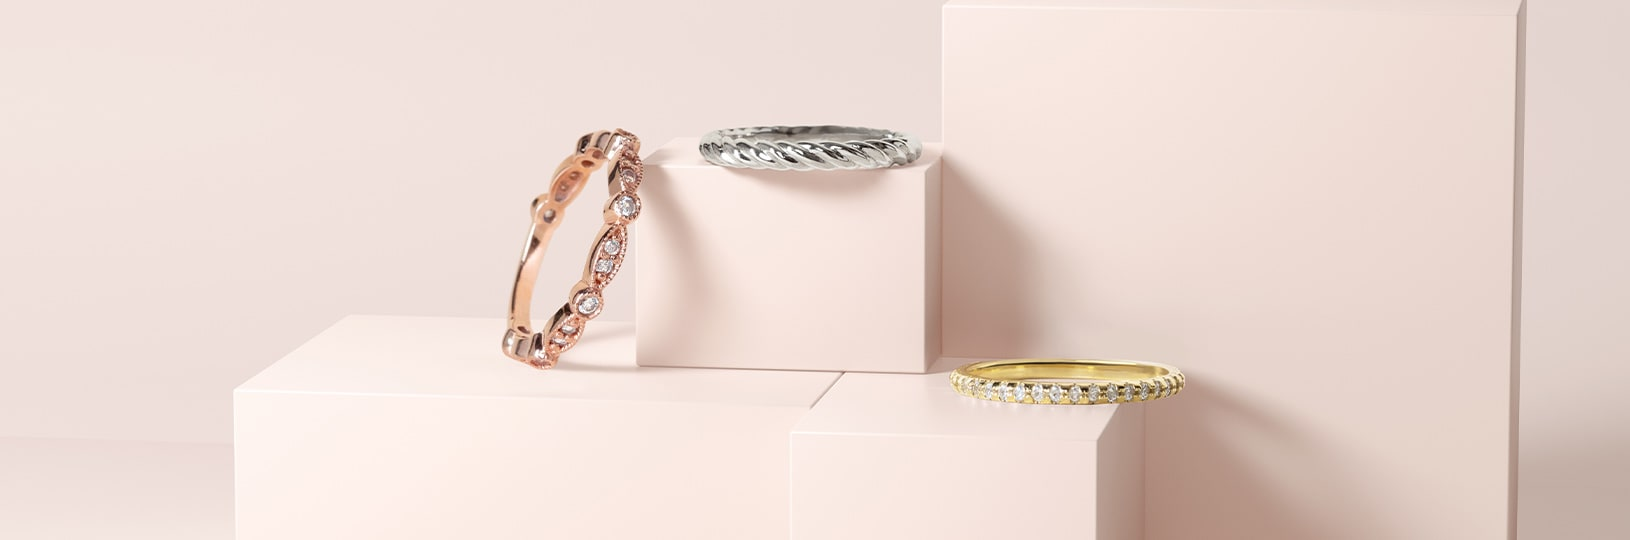 Rose gold, white gold and yellow gold wedding bands compared side by side